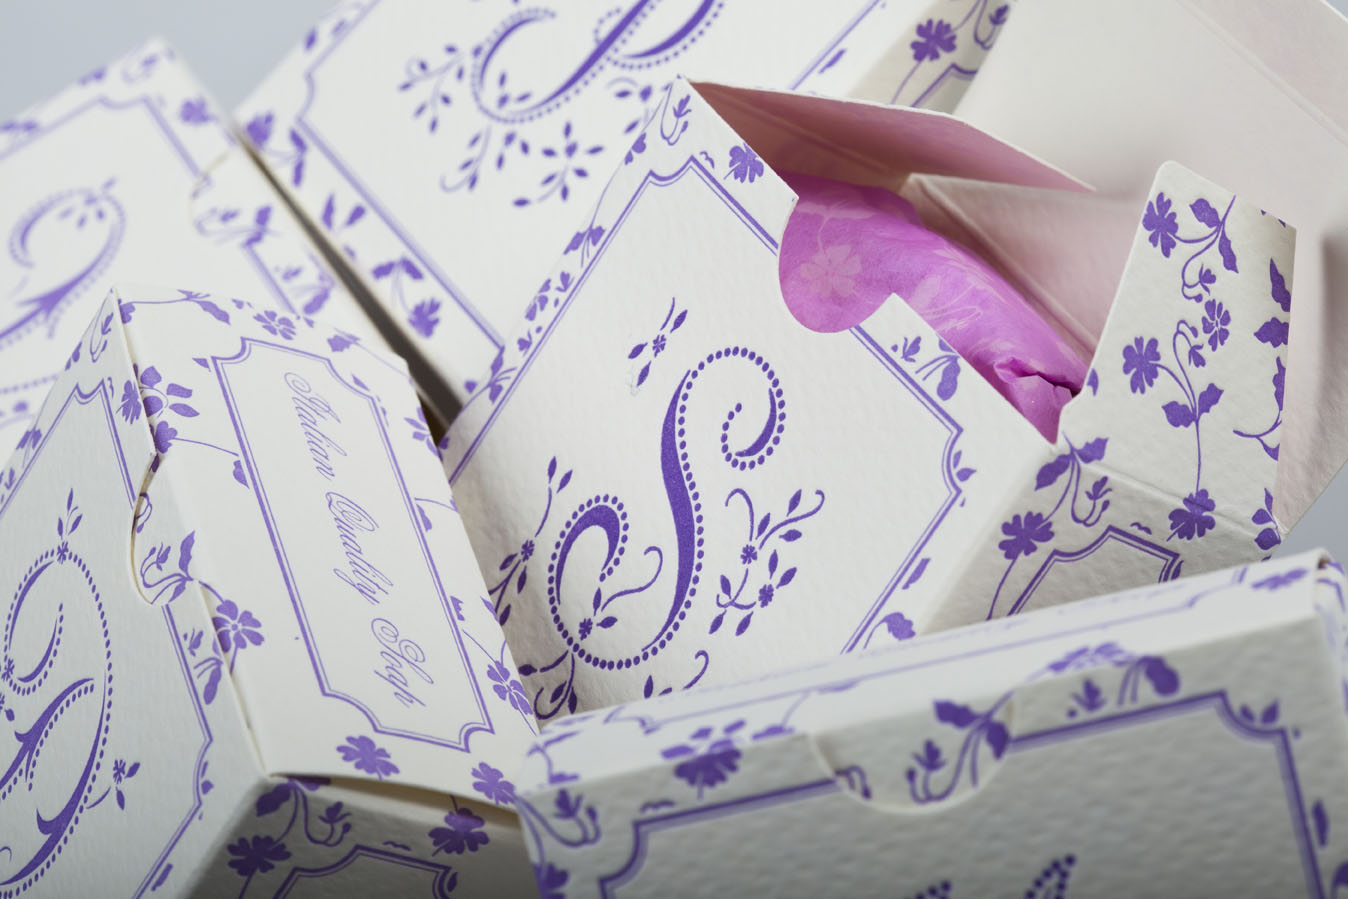 Boxed soaps with Rossi 1931 decorative papers